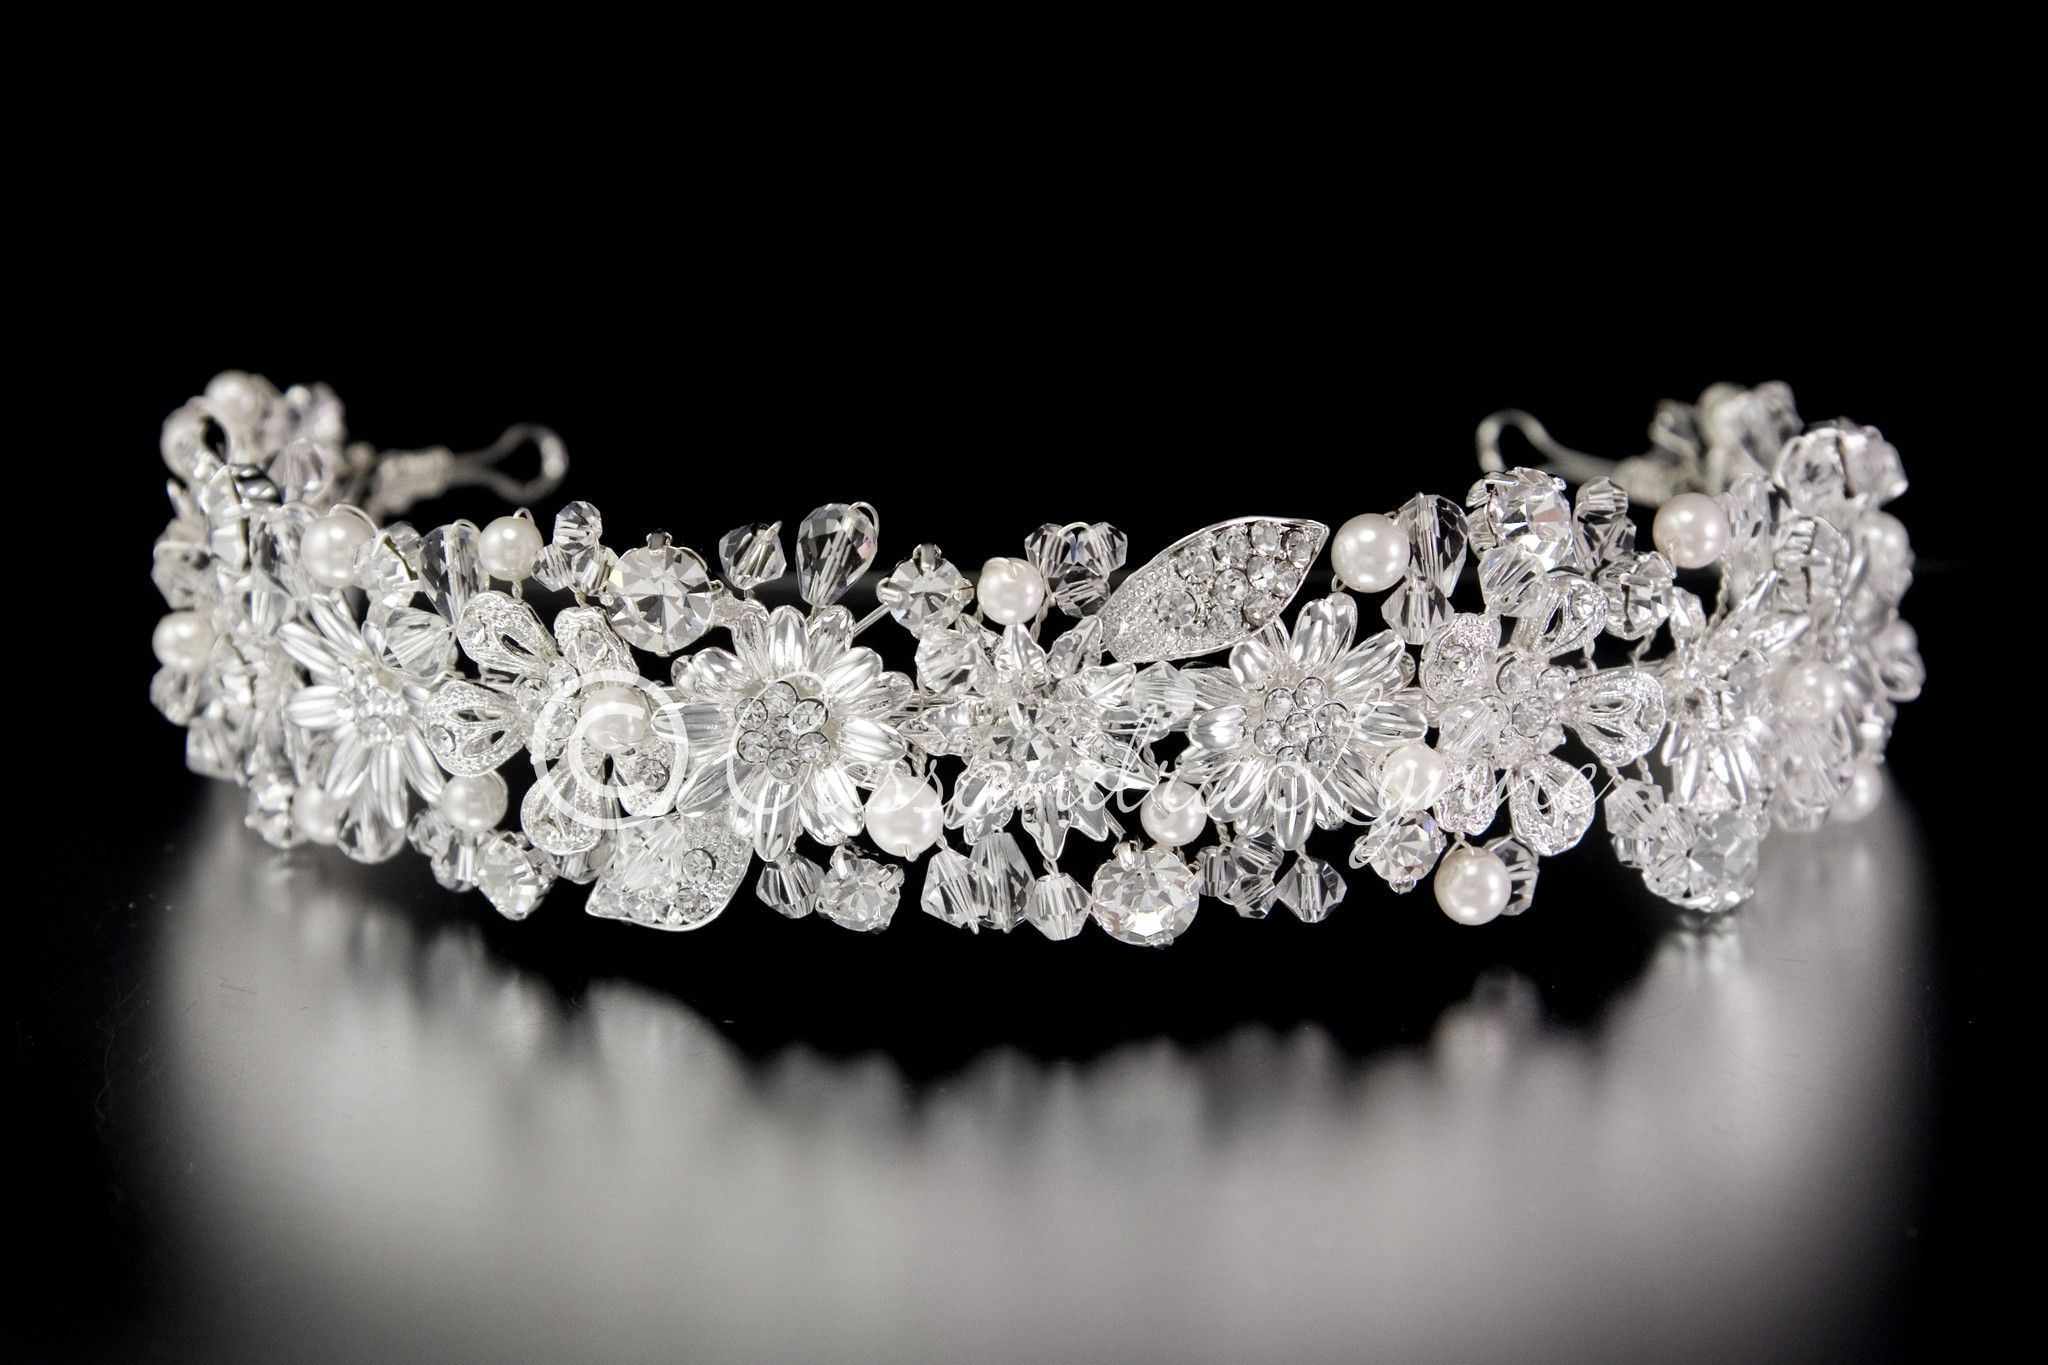 Wedding accessories pearls flowers pearls - Wedding Headpiece Silver Flowers Pearls Jewels And Crystals